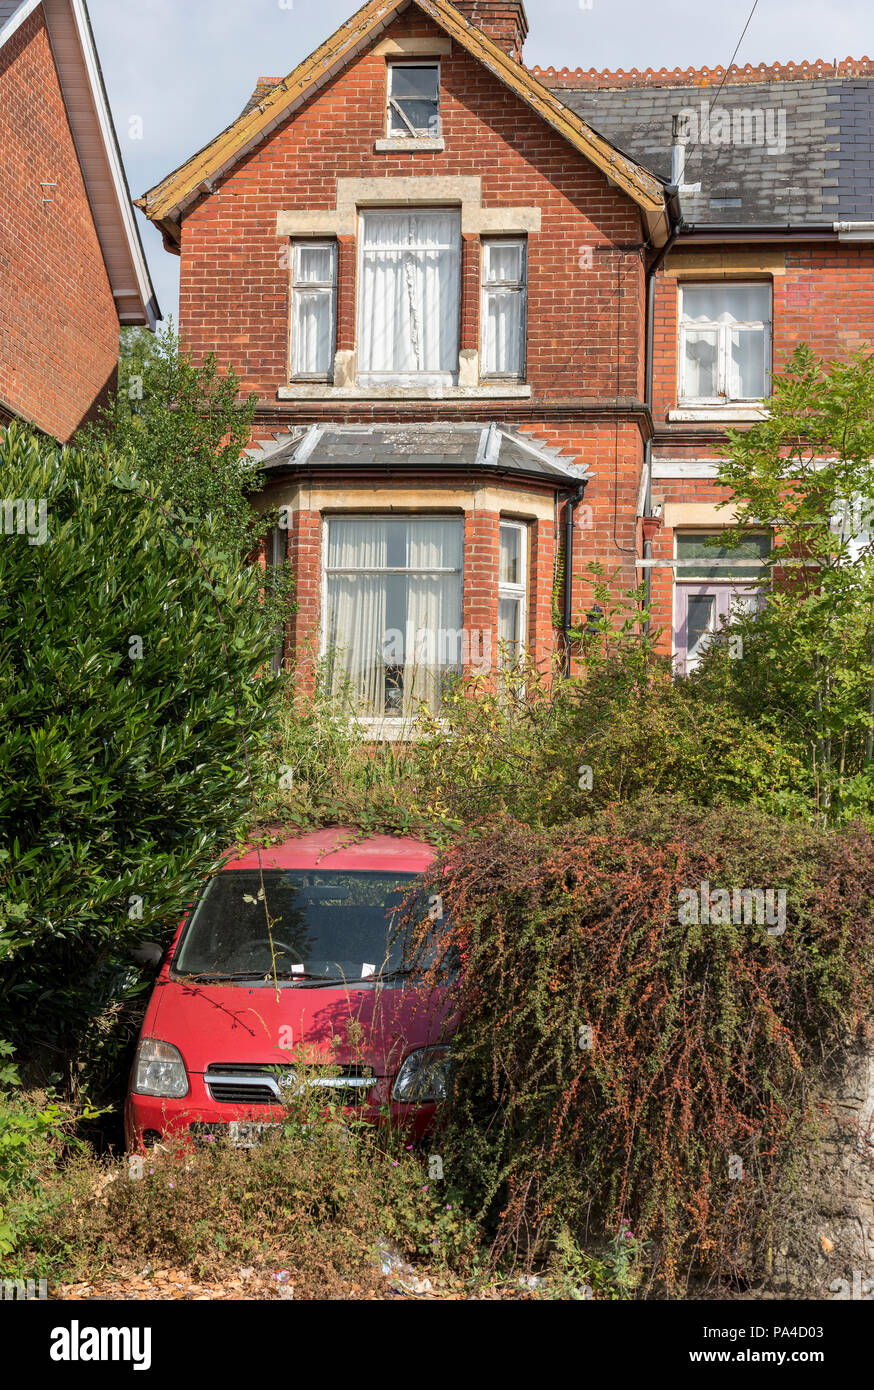 poorly maintained house with overgrown garden - Stock Image